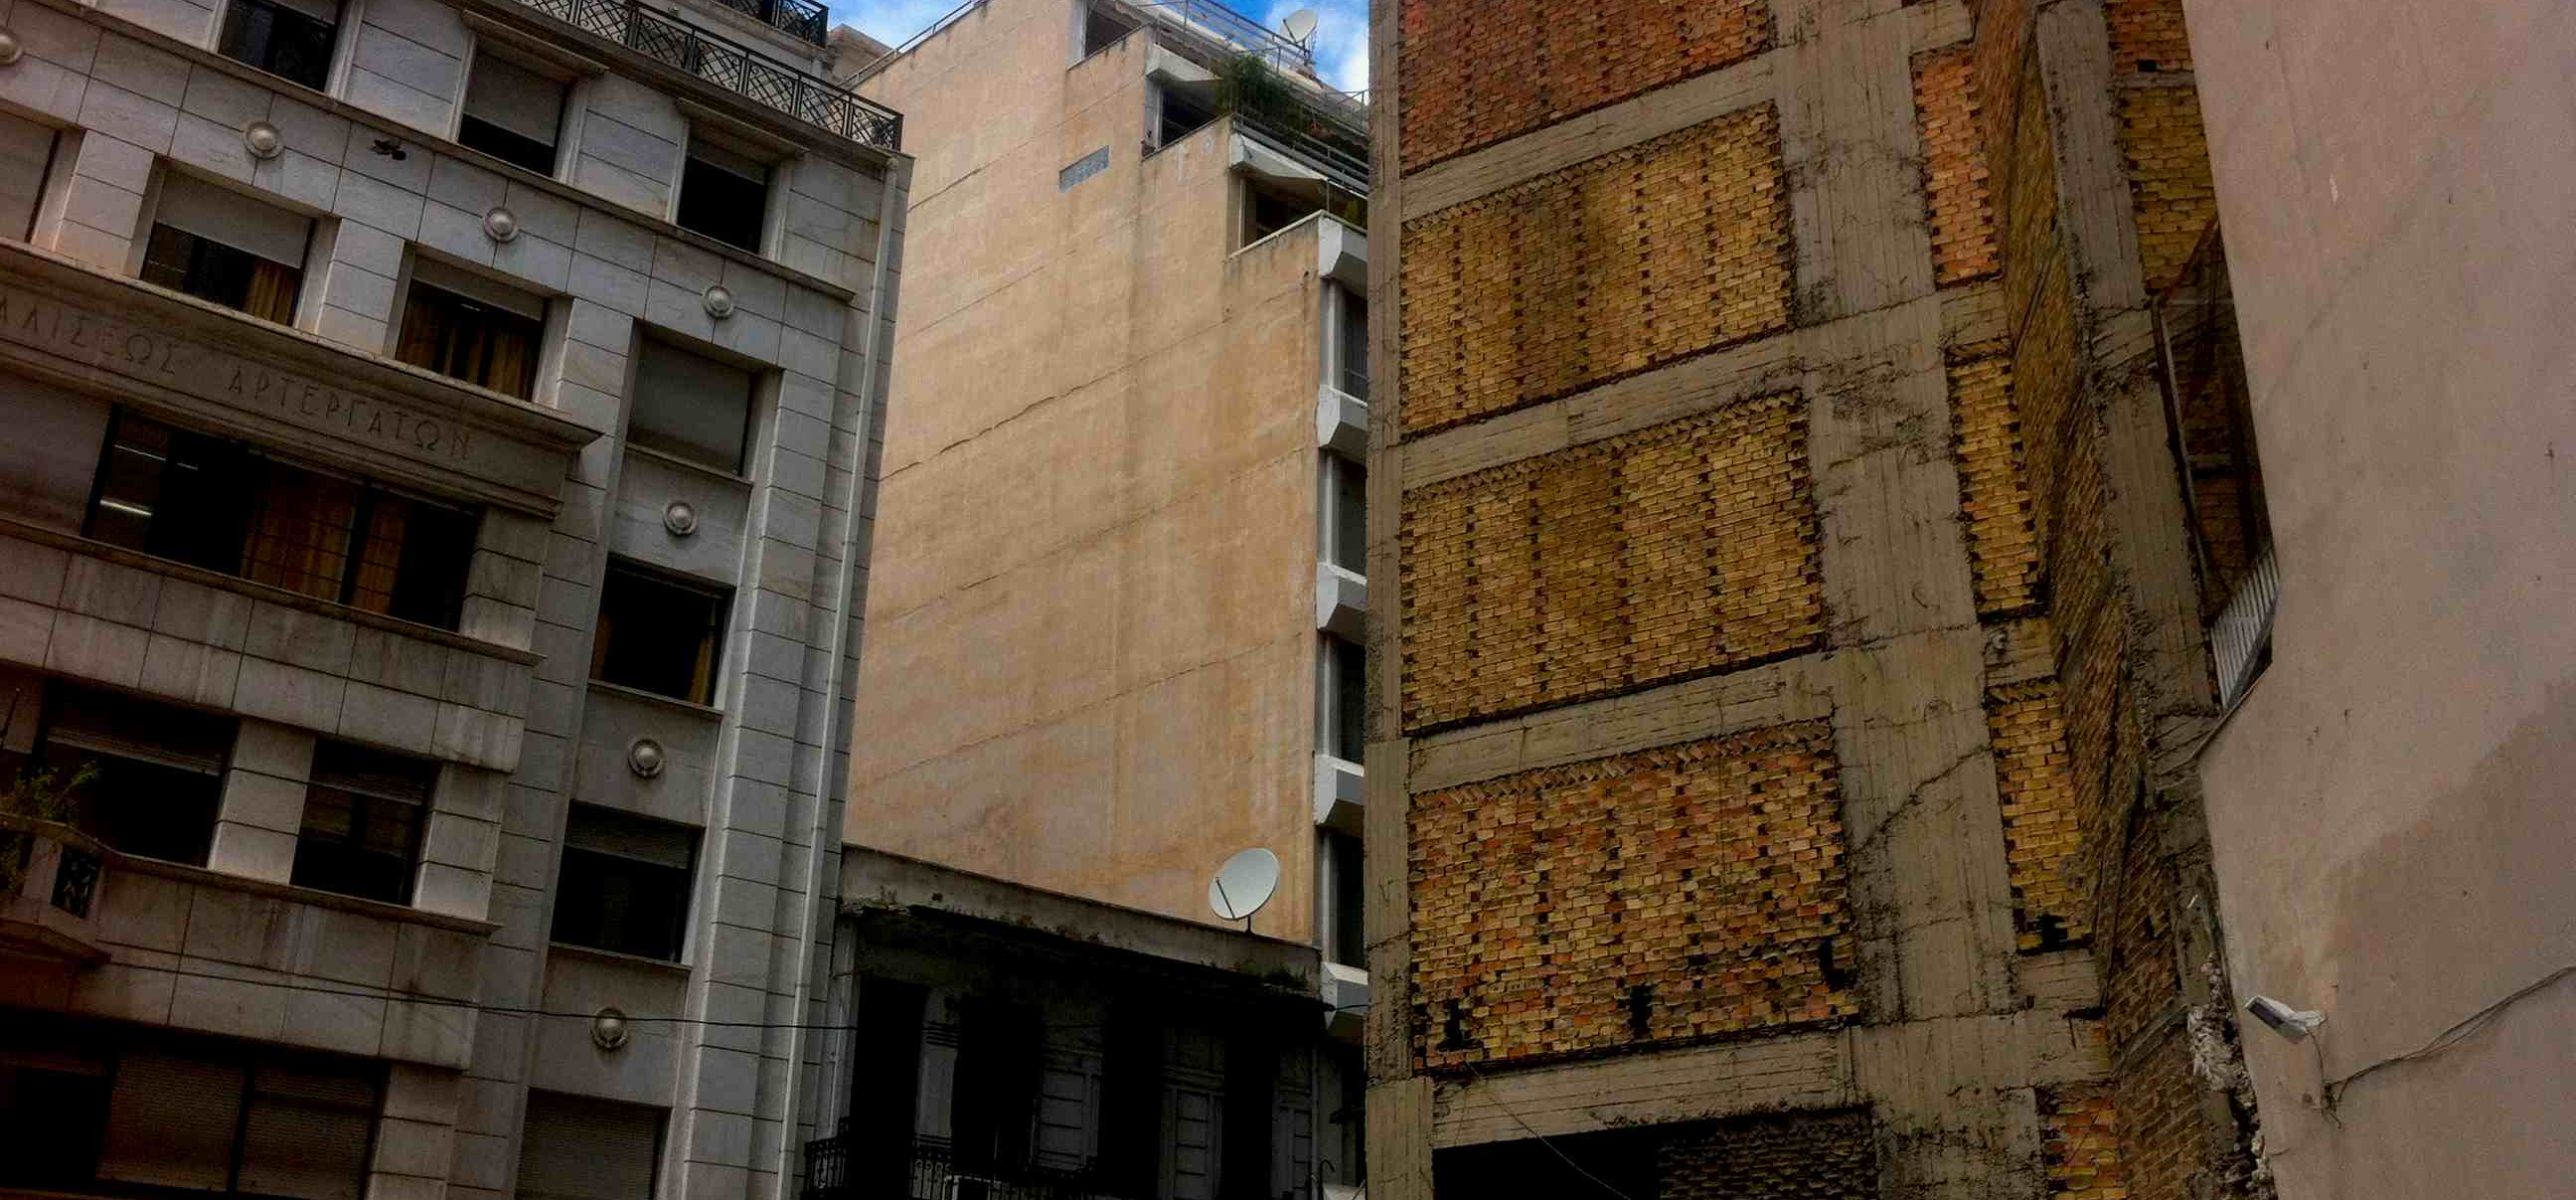 What is City of Errors? http://cityoferrors.com/